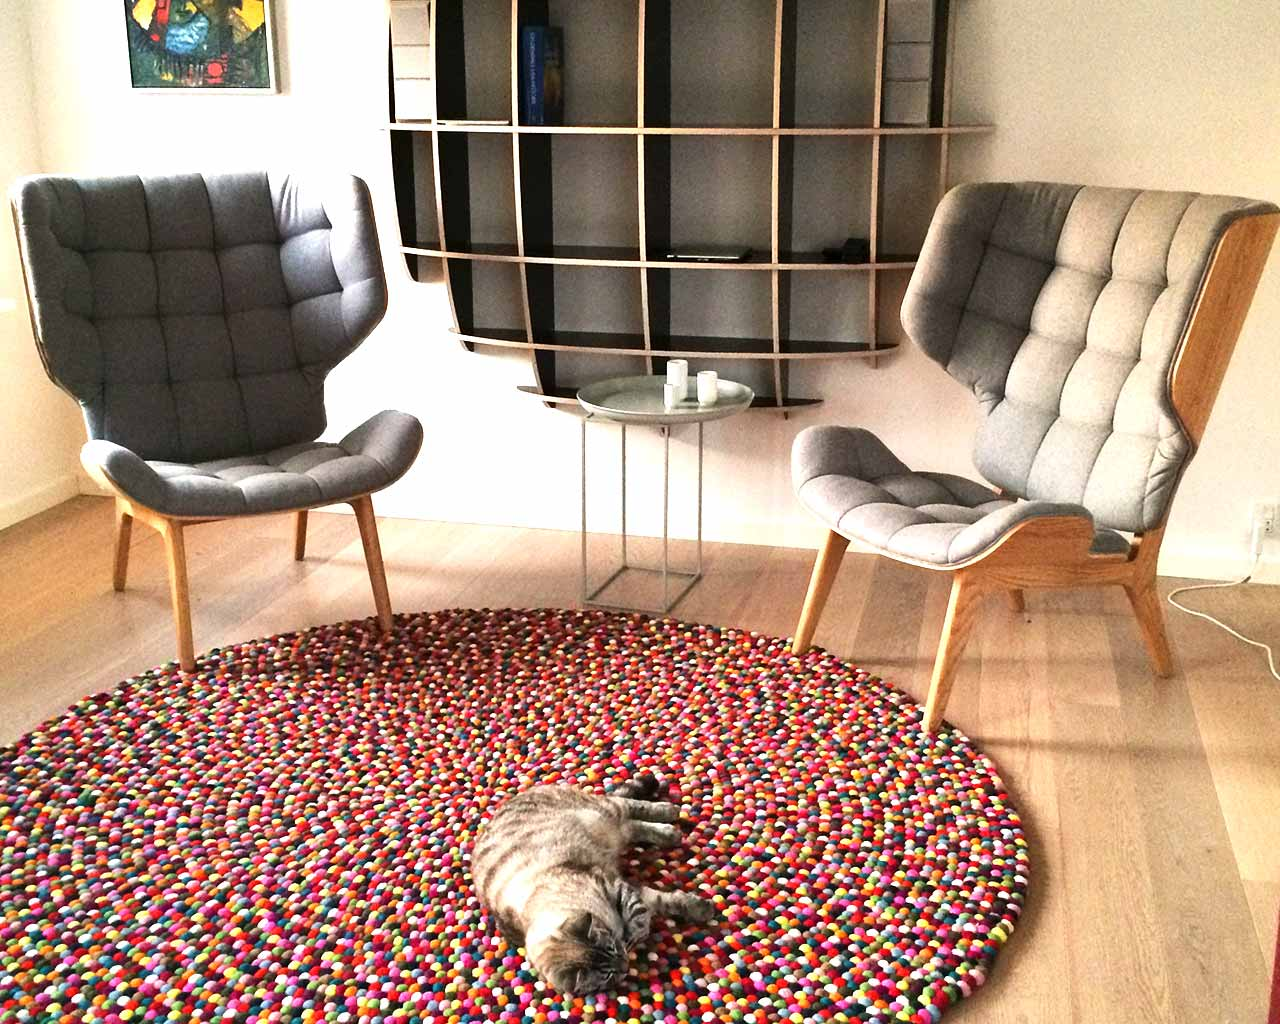 pinocchio rug with toy chairs cat